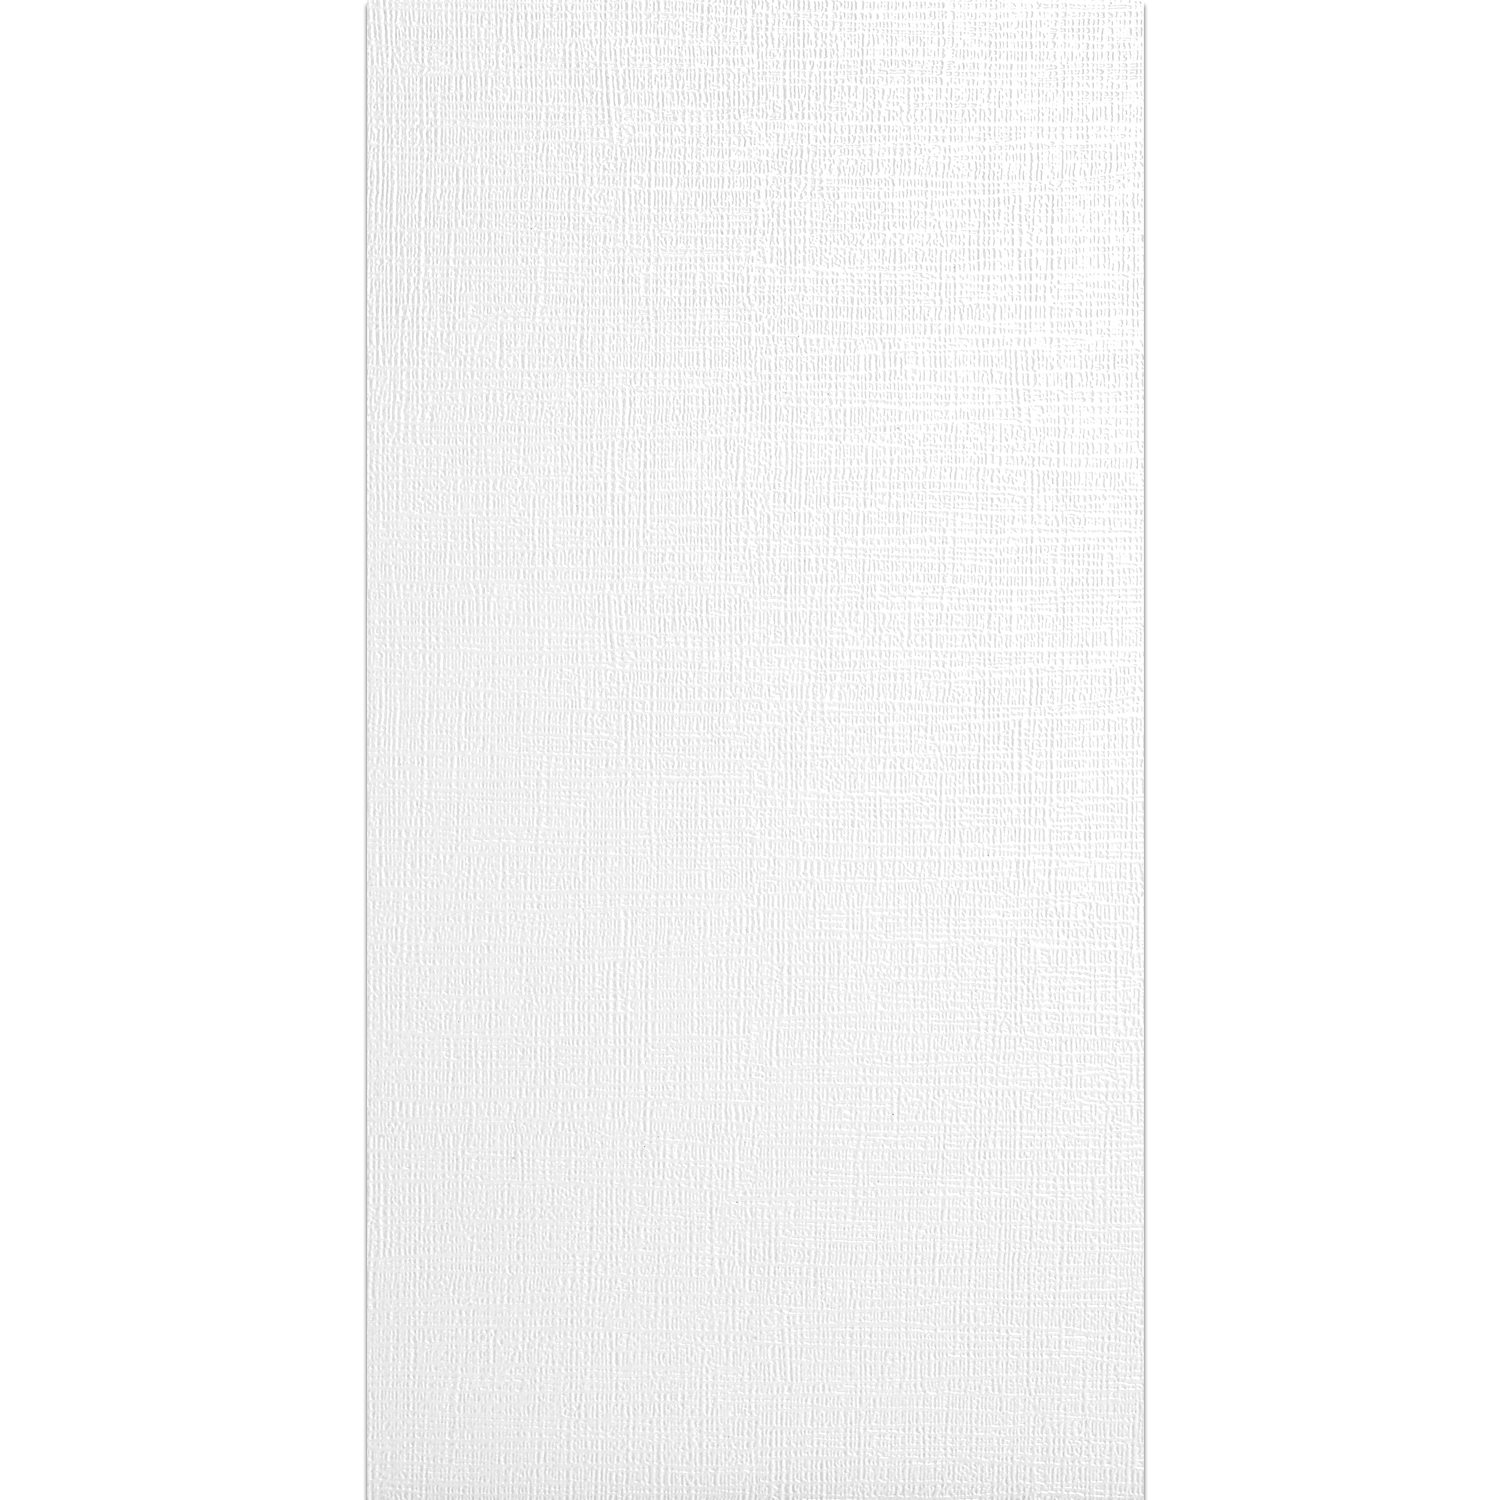 carrelage mural vulcano texture d cor blanc mat 60x120cm al69361. Black Bedroom Furniture Sets. Home Design Ideas